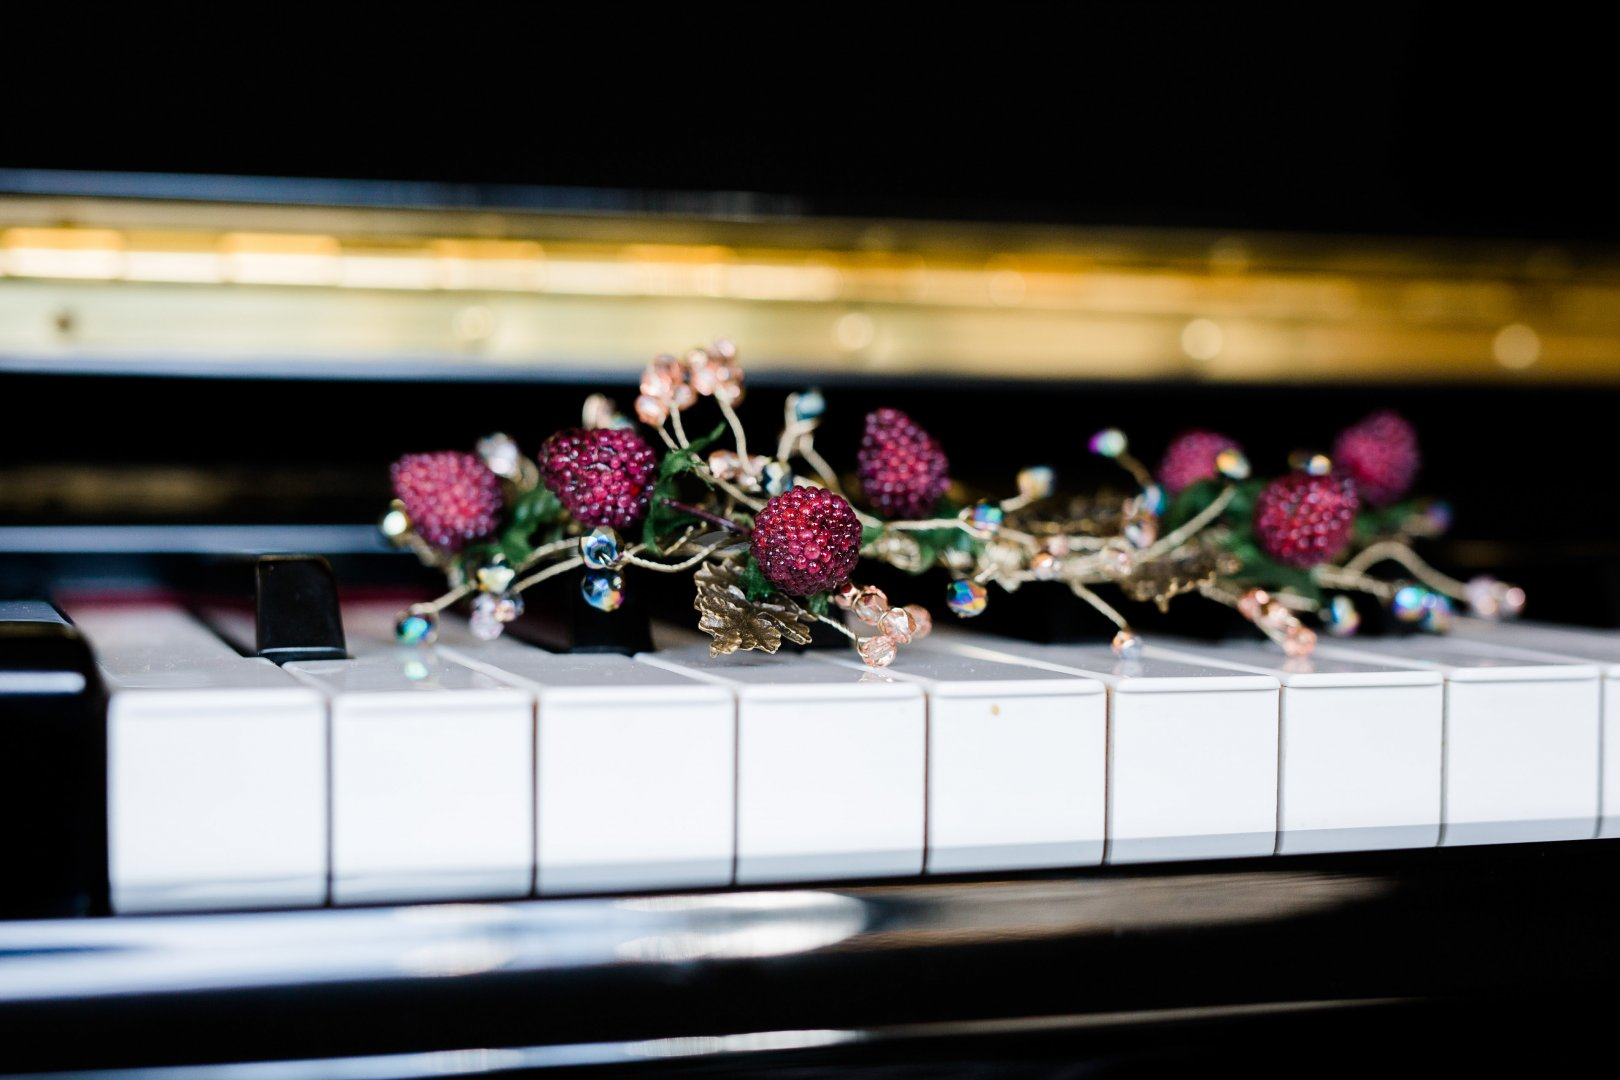 Pink Flower Floral design Floristry Purple Plant Technology Flower Arranging Piano Electronic device Still life photography Table Houseplant Petal Artificial flower Fashion accessory Magenta Cut flowers